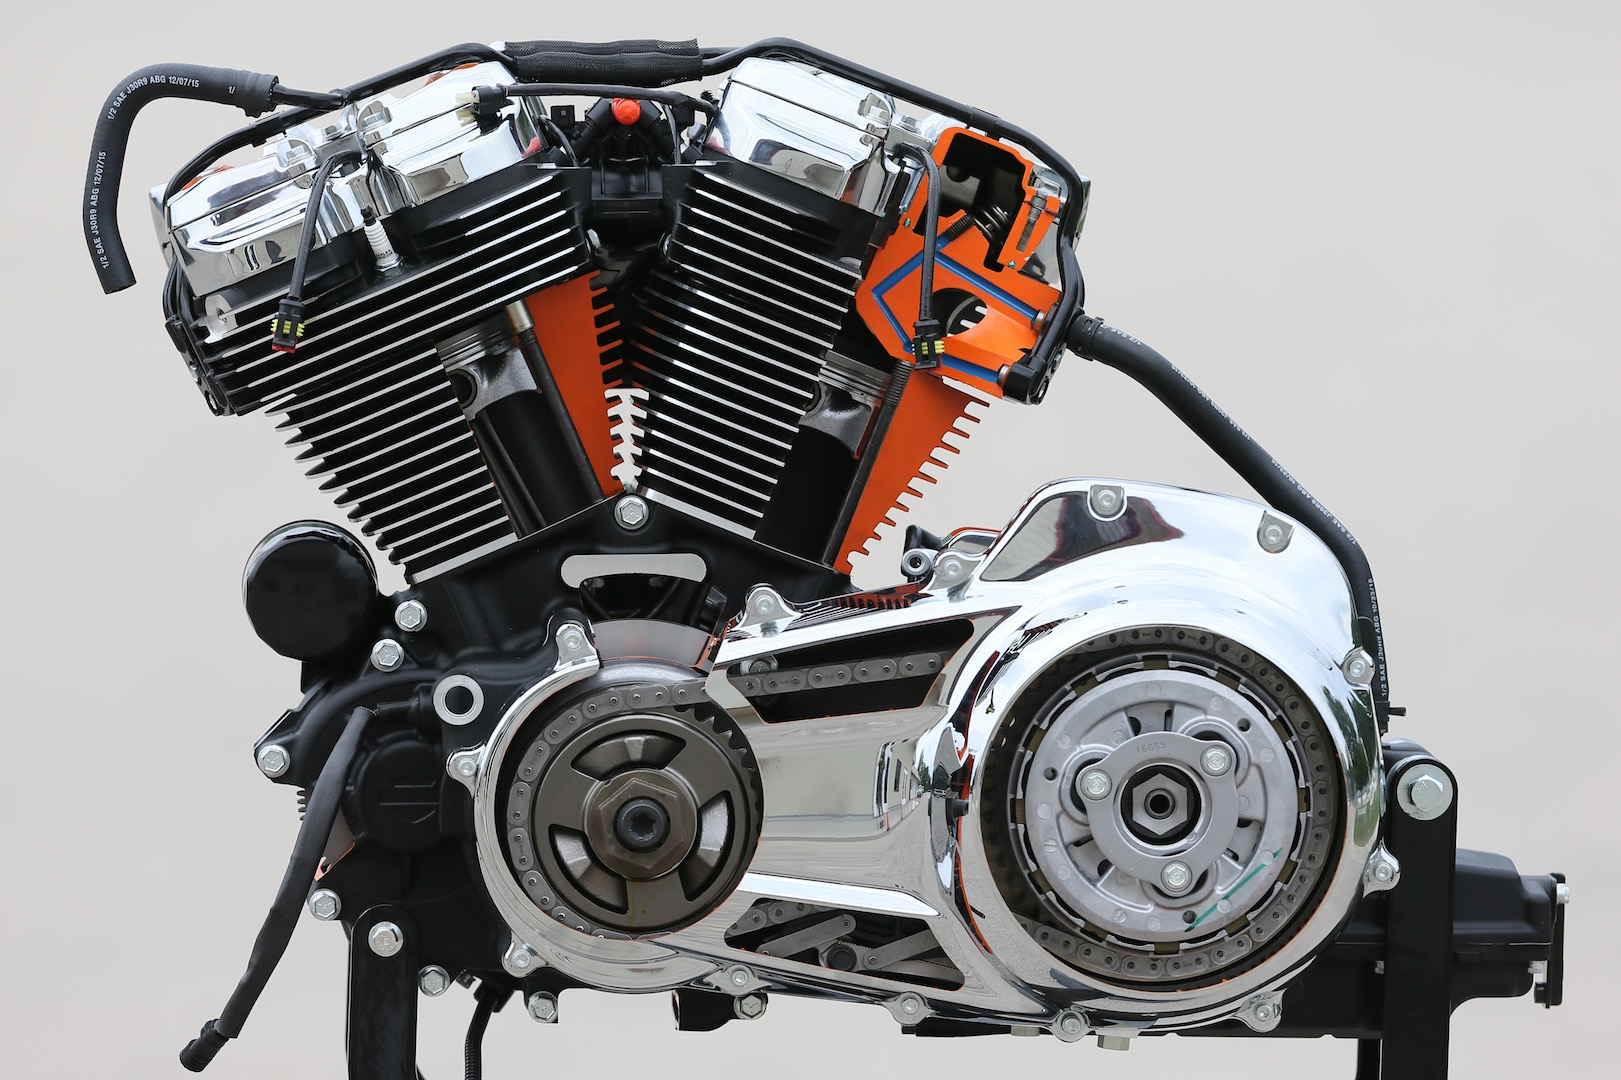 Harley Davidson Milwaukee >> 2017 Harley Davidson Milwaukee Eight Engines 11 Fast Facts